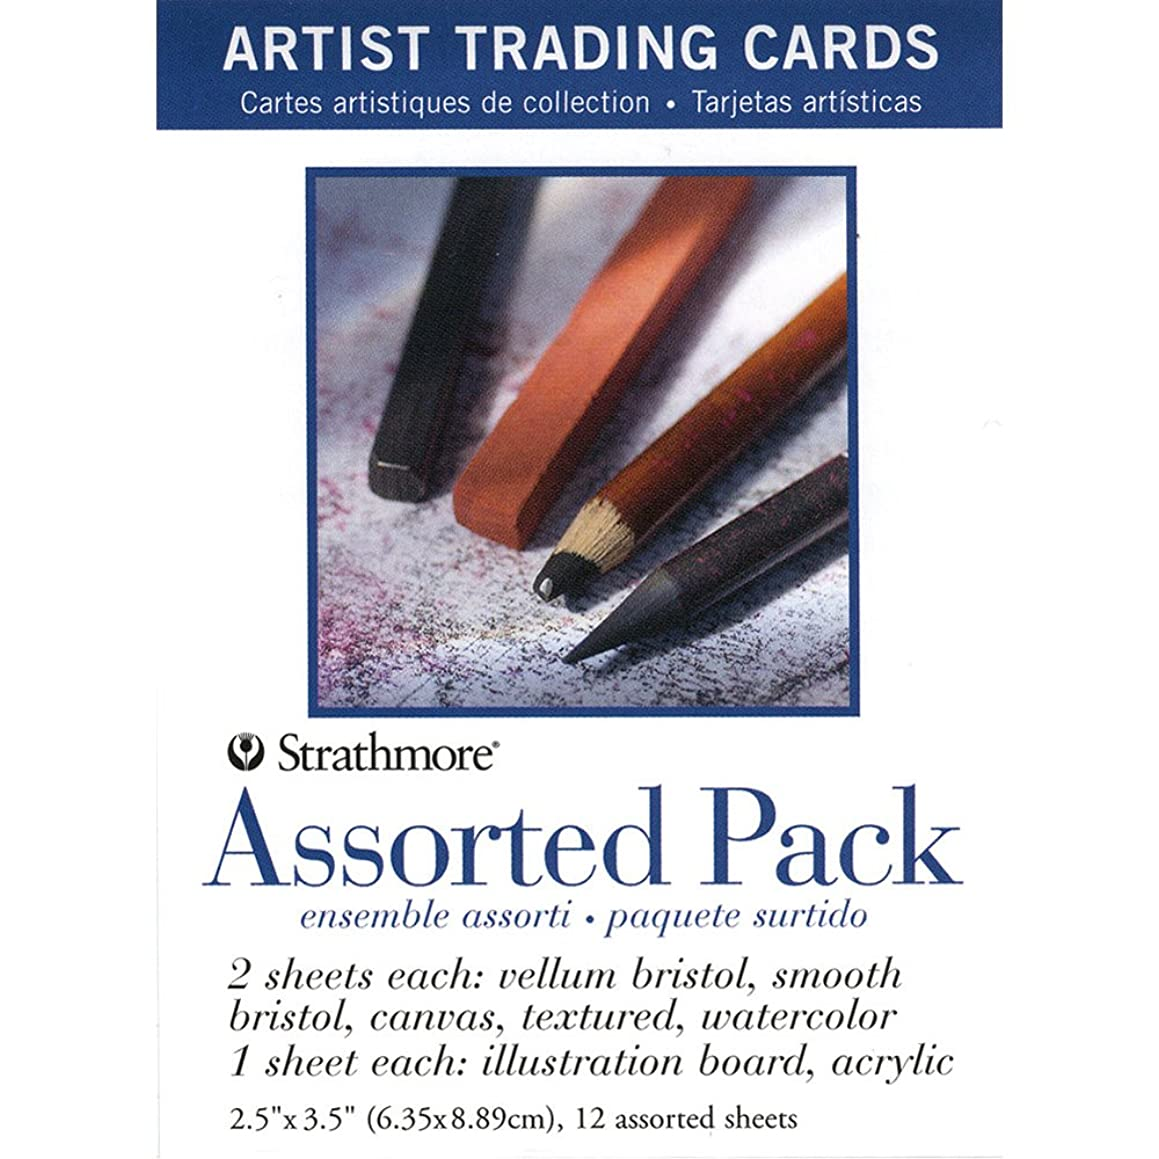 Strathmore ((105-908 Artist Trading Cards, Assortment Pack, Natural White, 12 Sheets